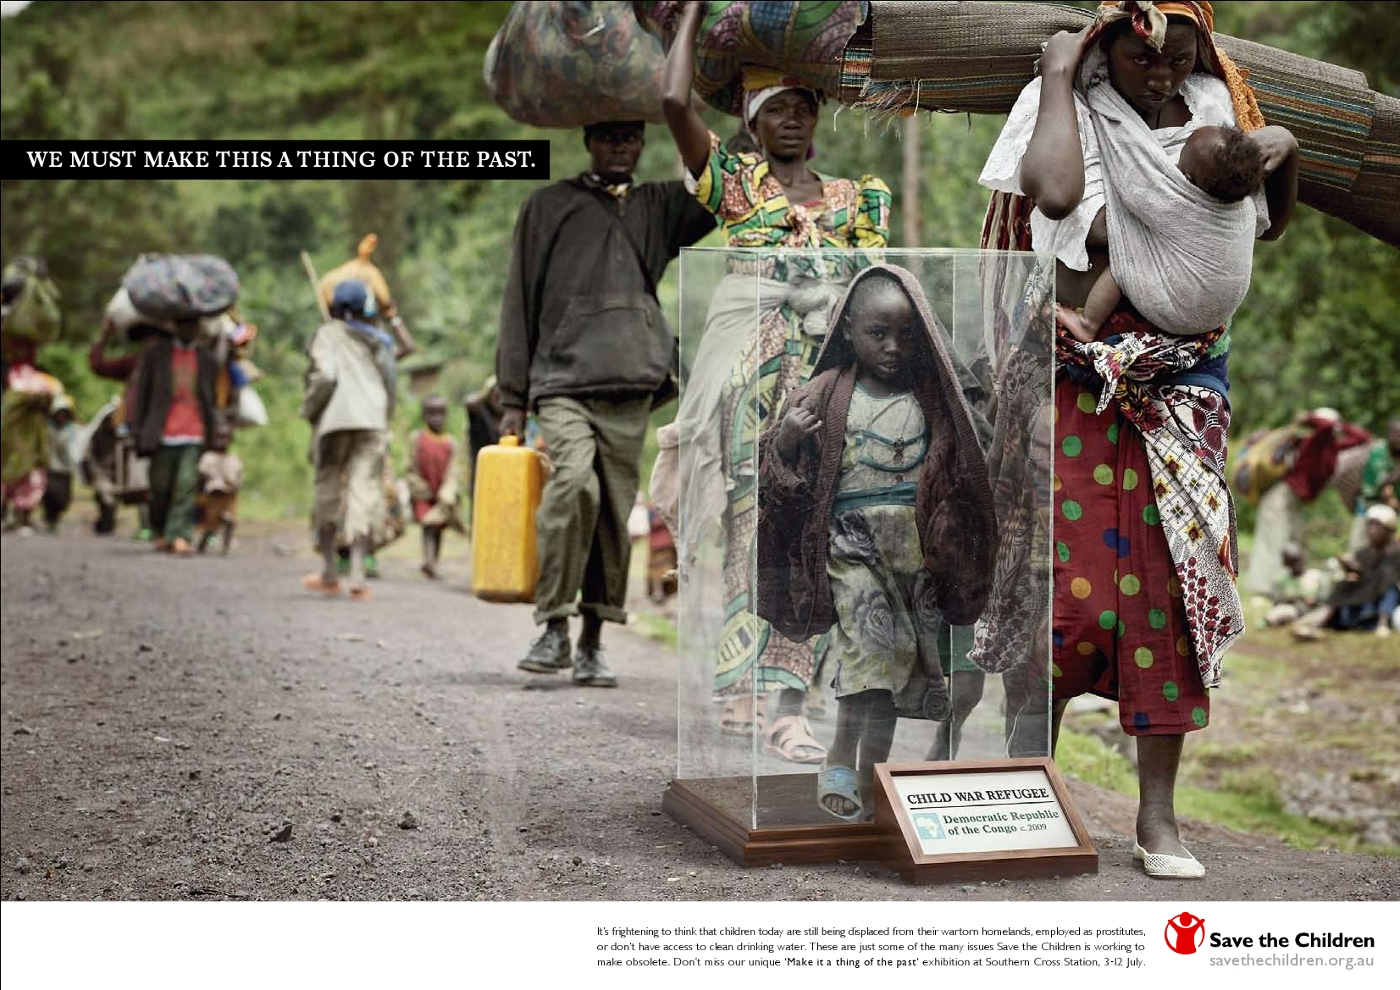 Save the Children Makes Injustice Thing of the Past - The